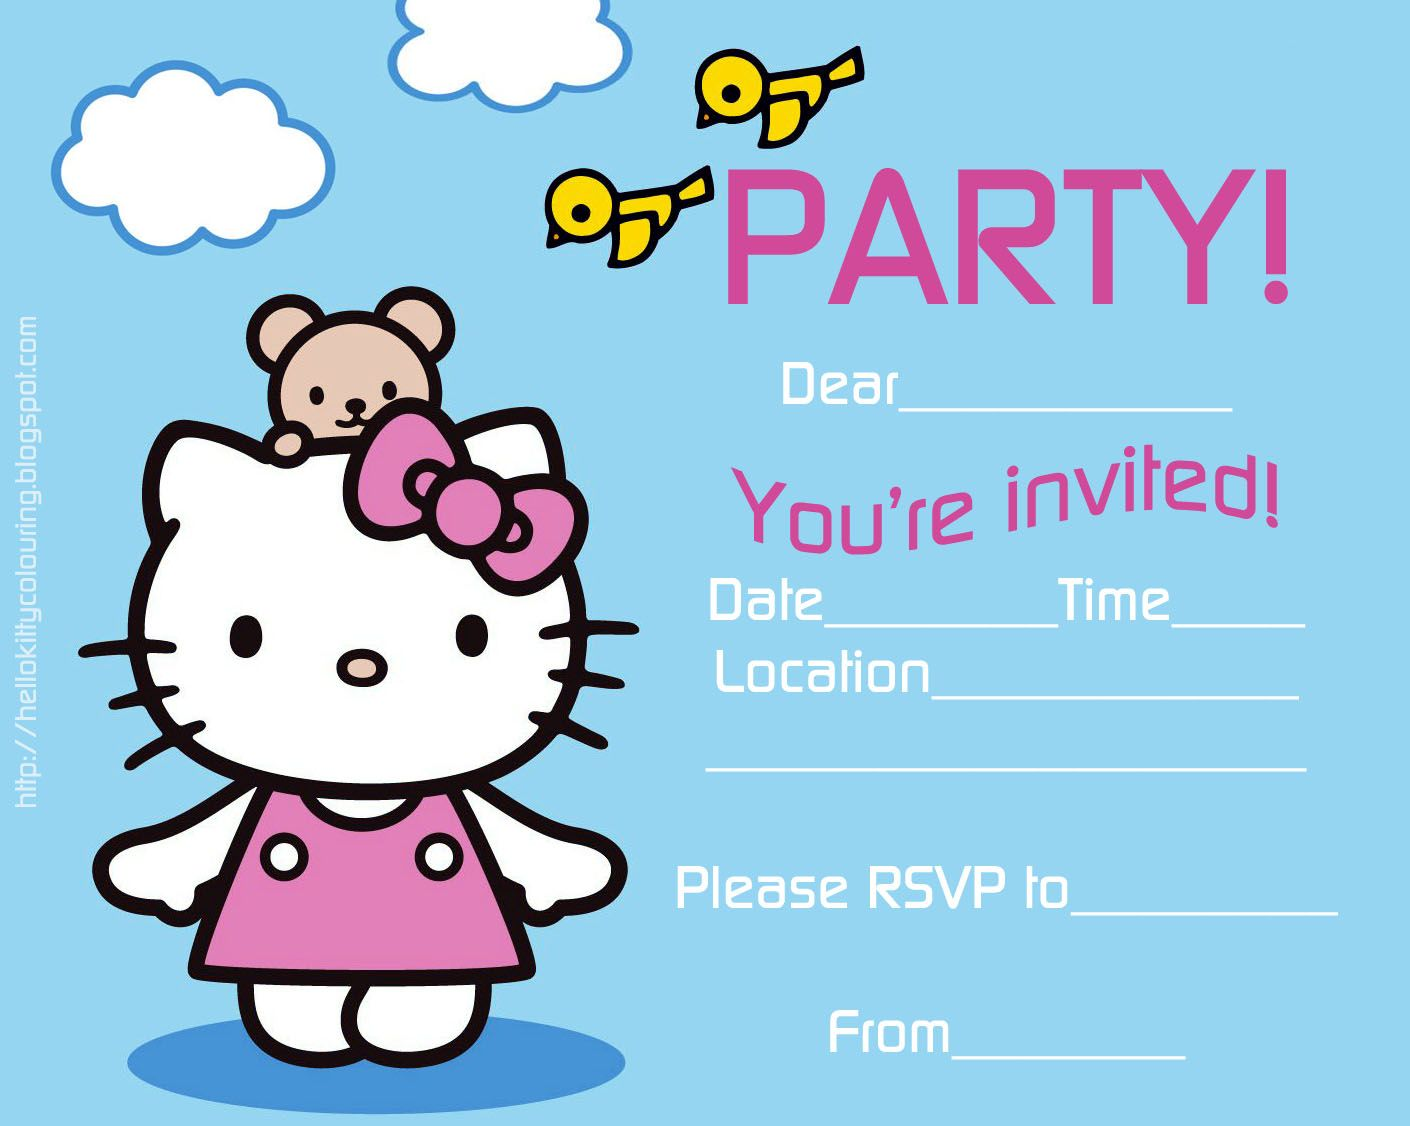 Maybe Youd Like To Have A Hello Kitty Theme Your Party Here Is Free Printable Hell Birthday In